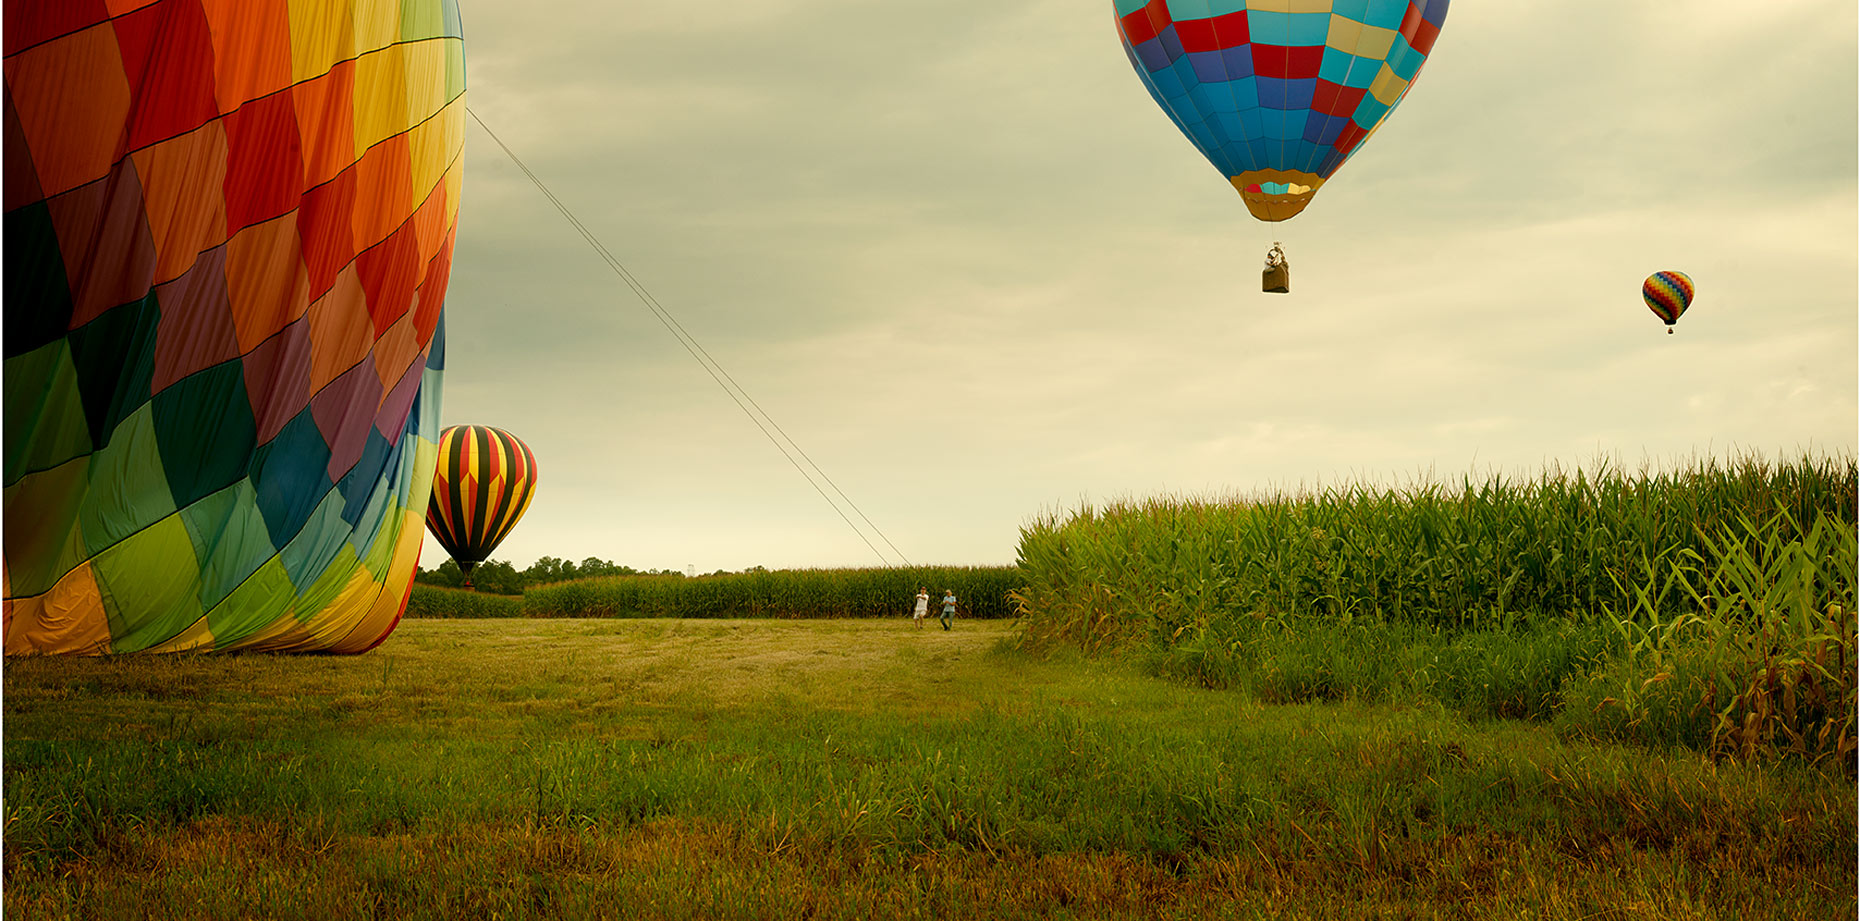 Ballooning-over-cornfields_MASTER